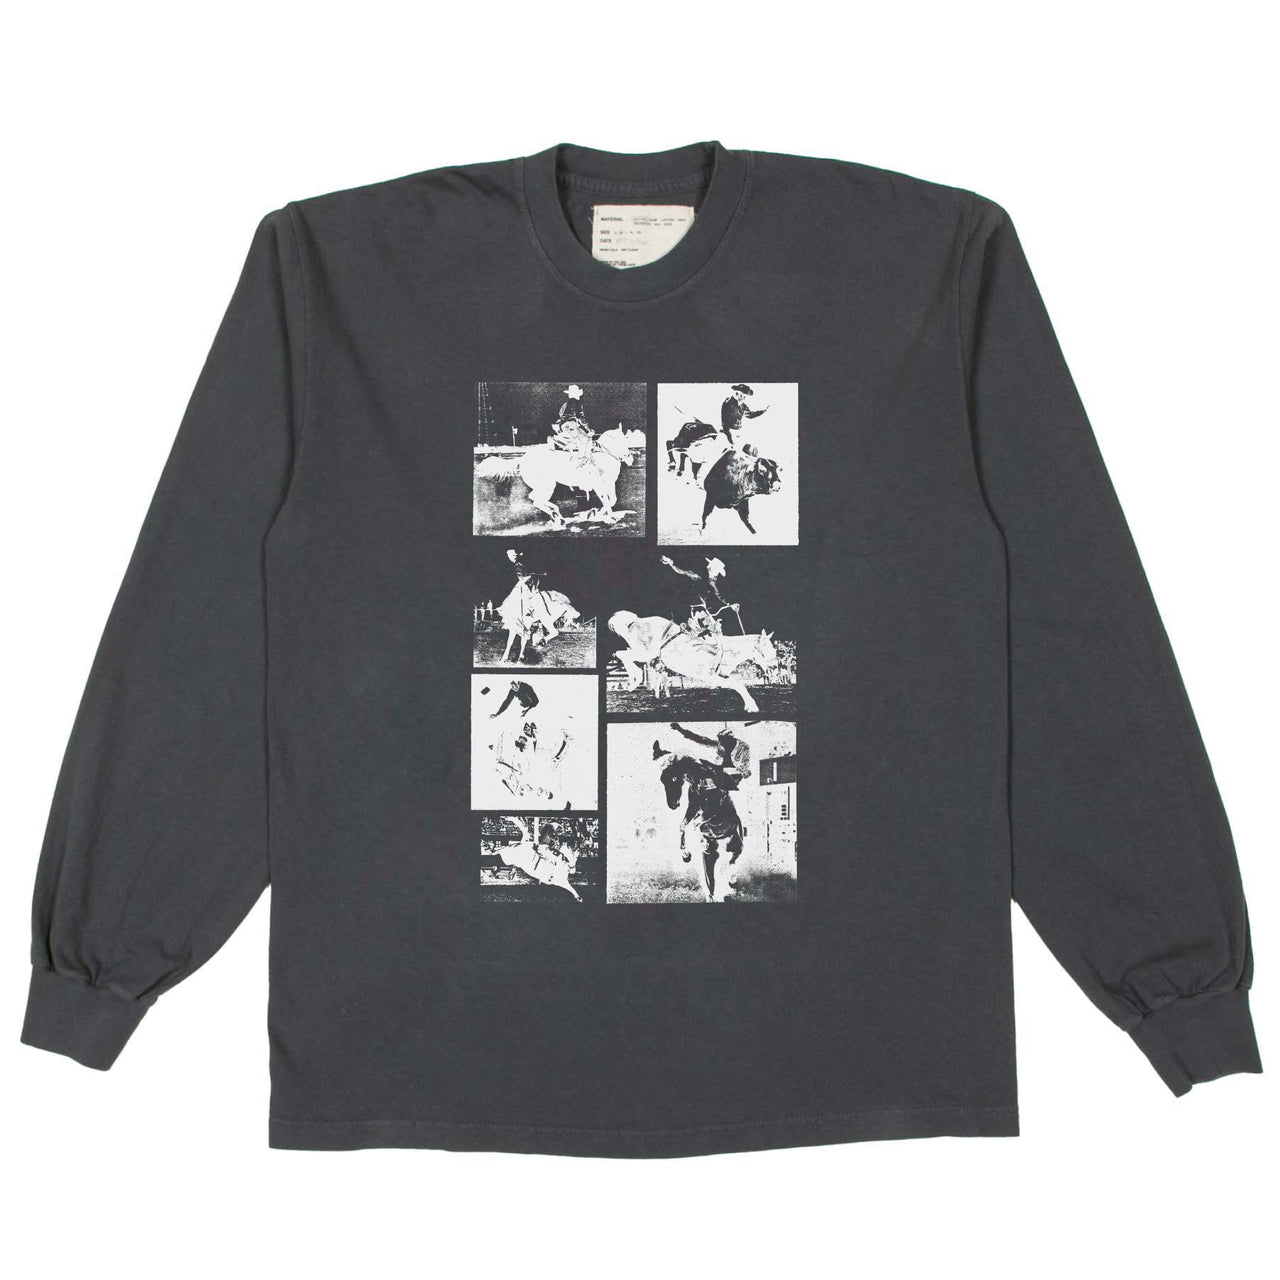 """RODEO"" LONGSLEEVE SHIRT - WASHED BLACK"